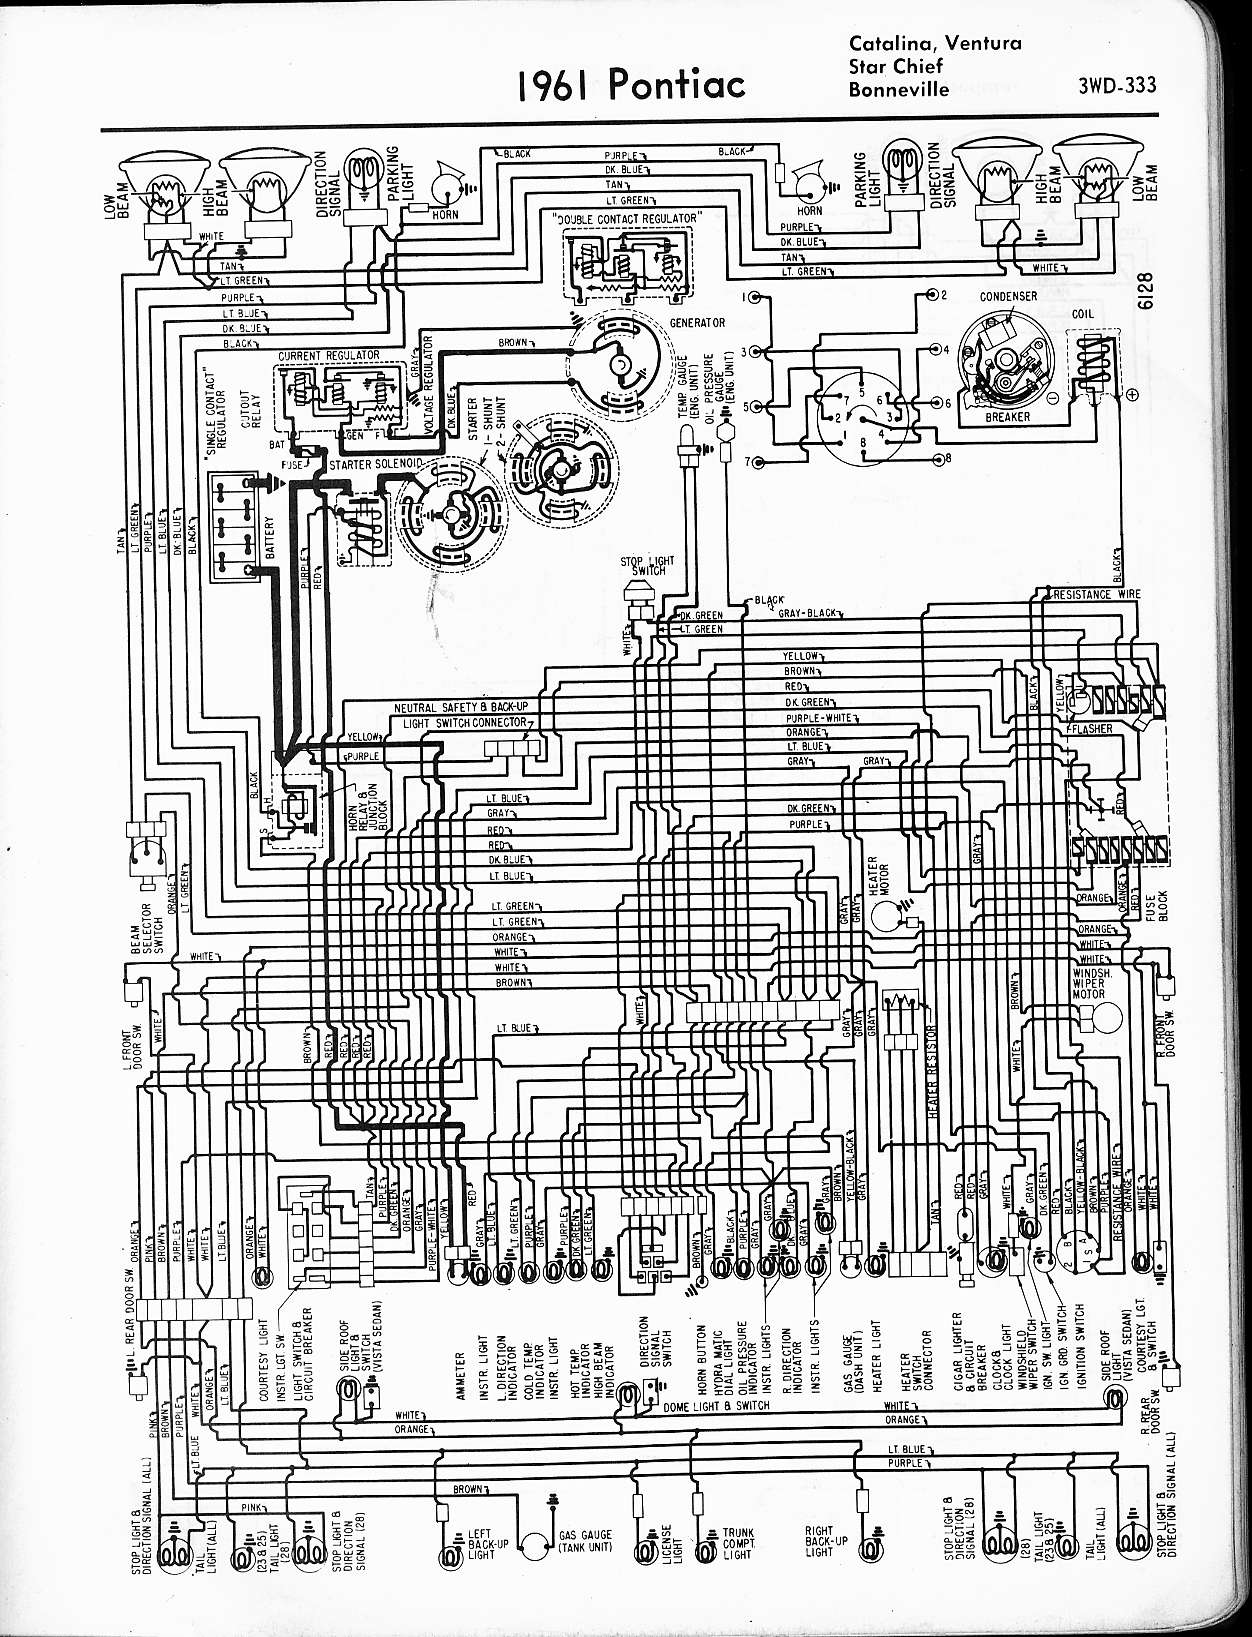 66 gto ignition switch wiring diagram detailed schematics diagram rh  mrskindsclass com 3D Engine Schematic Fuel Injector Schematic